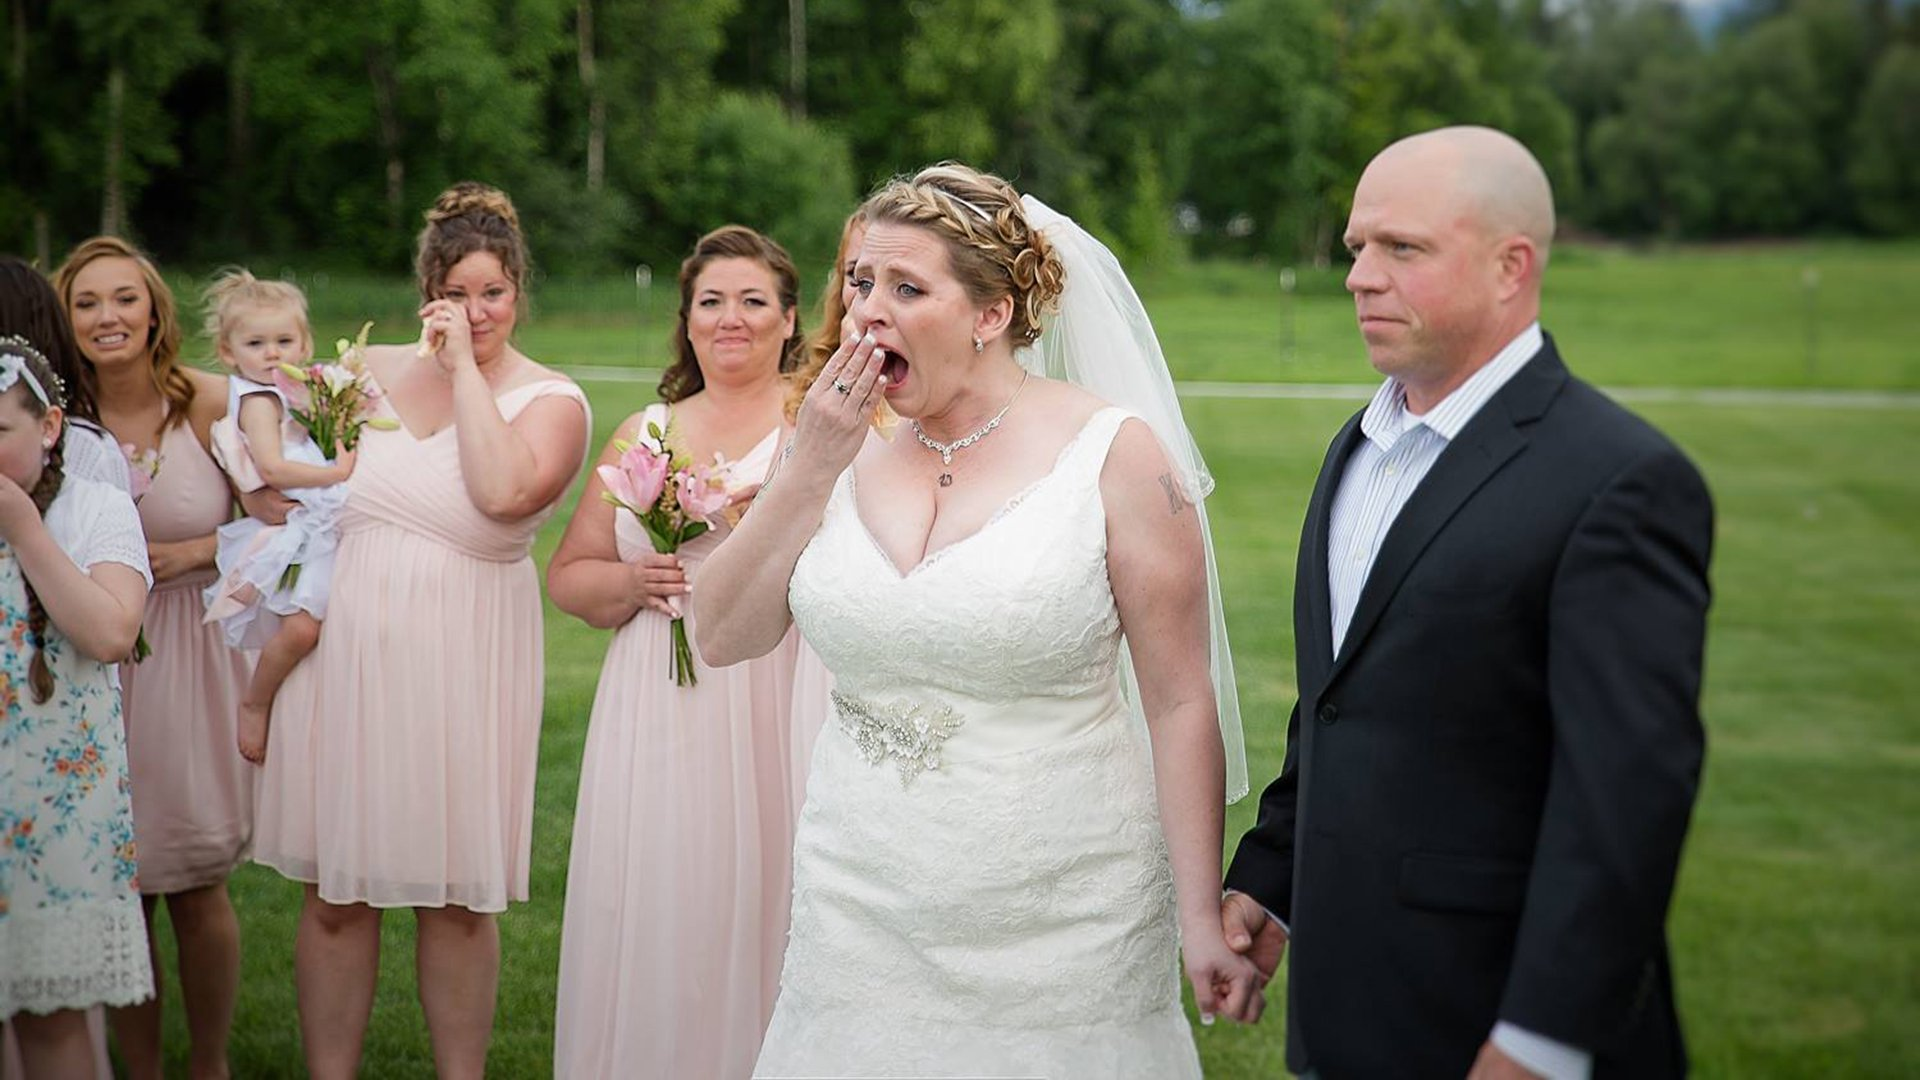 Bride gets wedding day surprise from man who received late son's heart https://t.co/MvtdAD8Qt2 https://t.co/FNGEgPkuaL